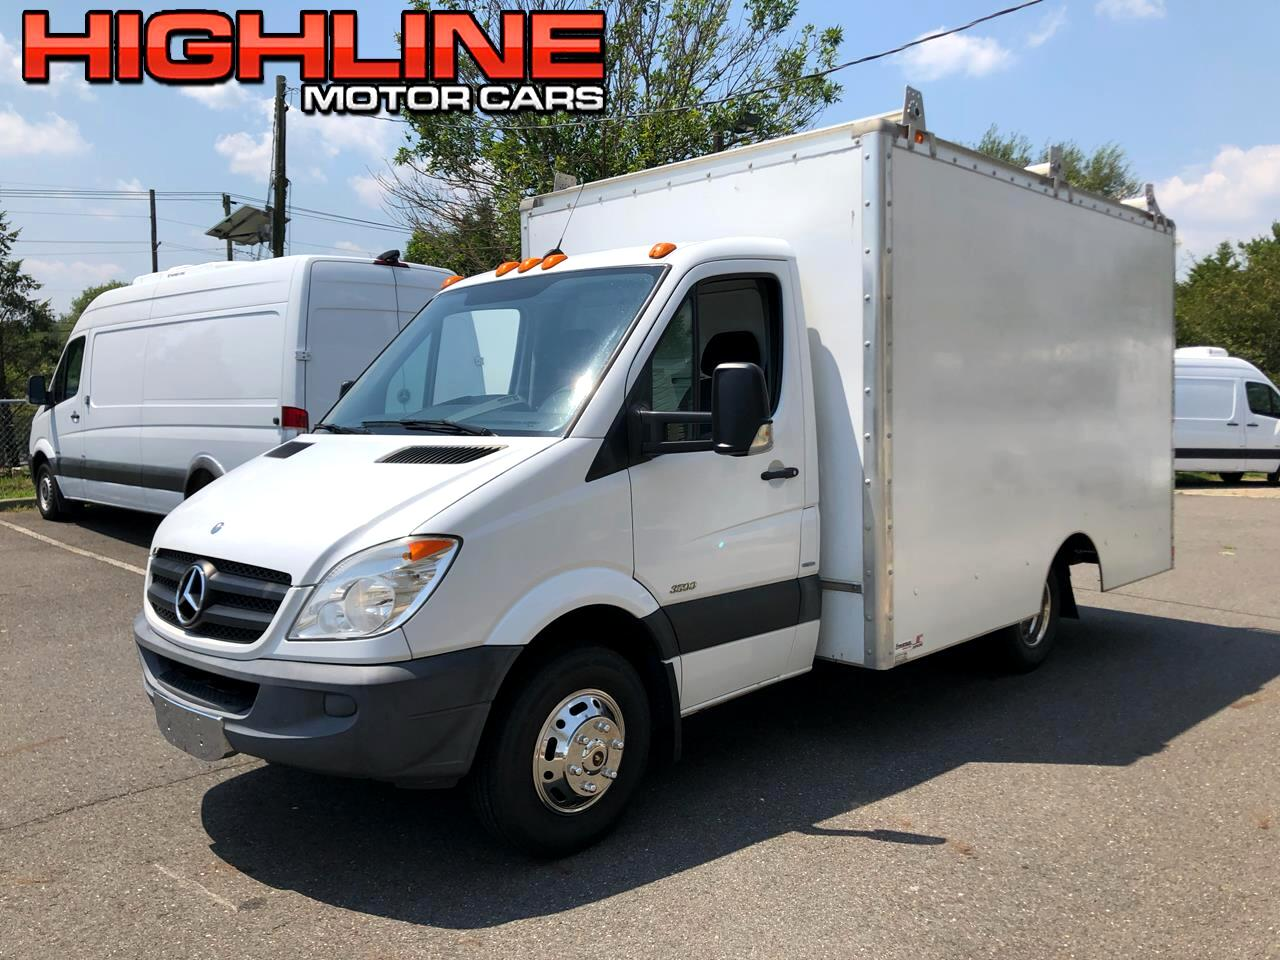 2012 Mercedes-Benz Sprinter Chassis-Cabs